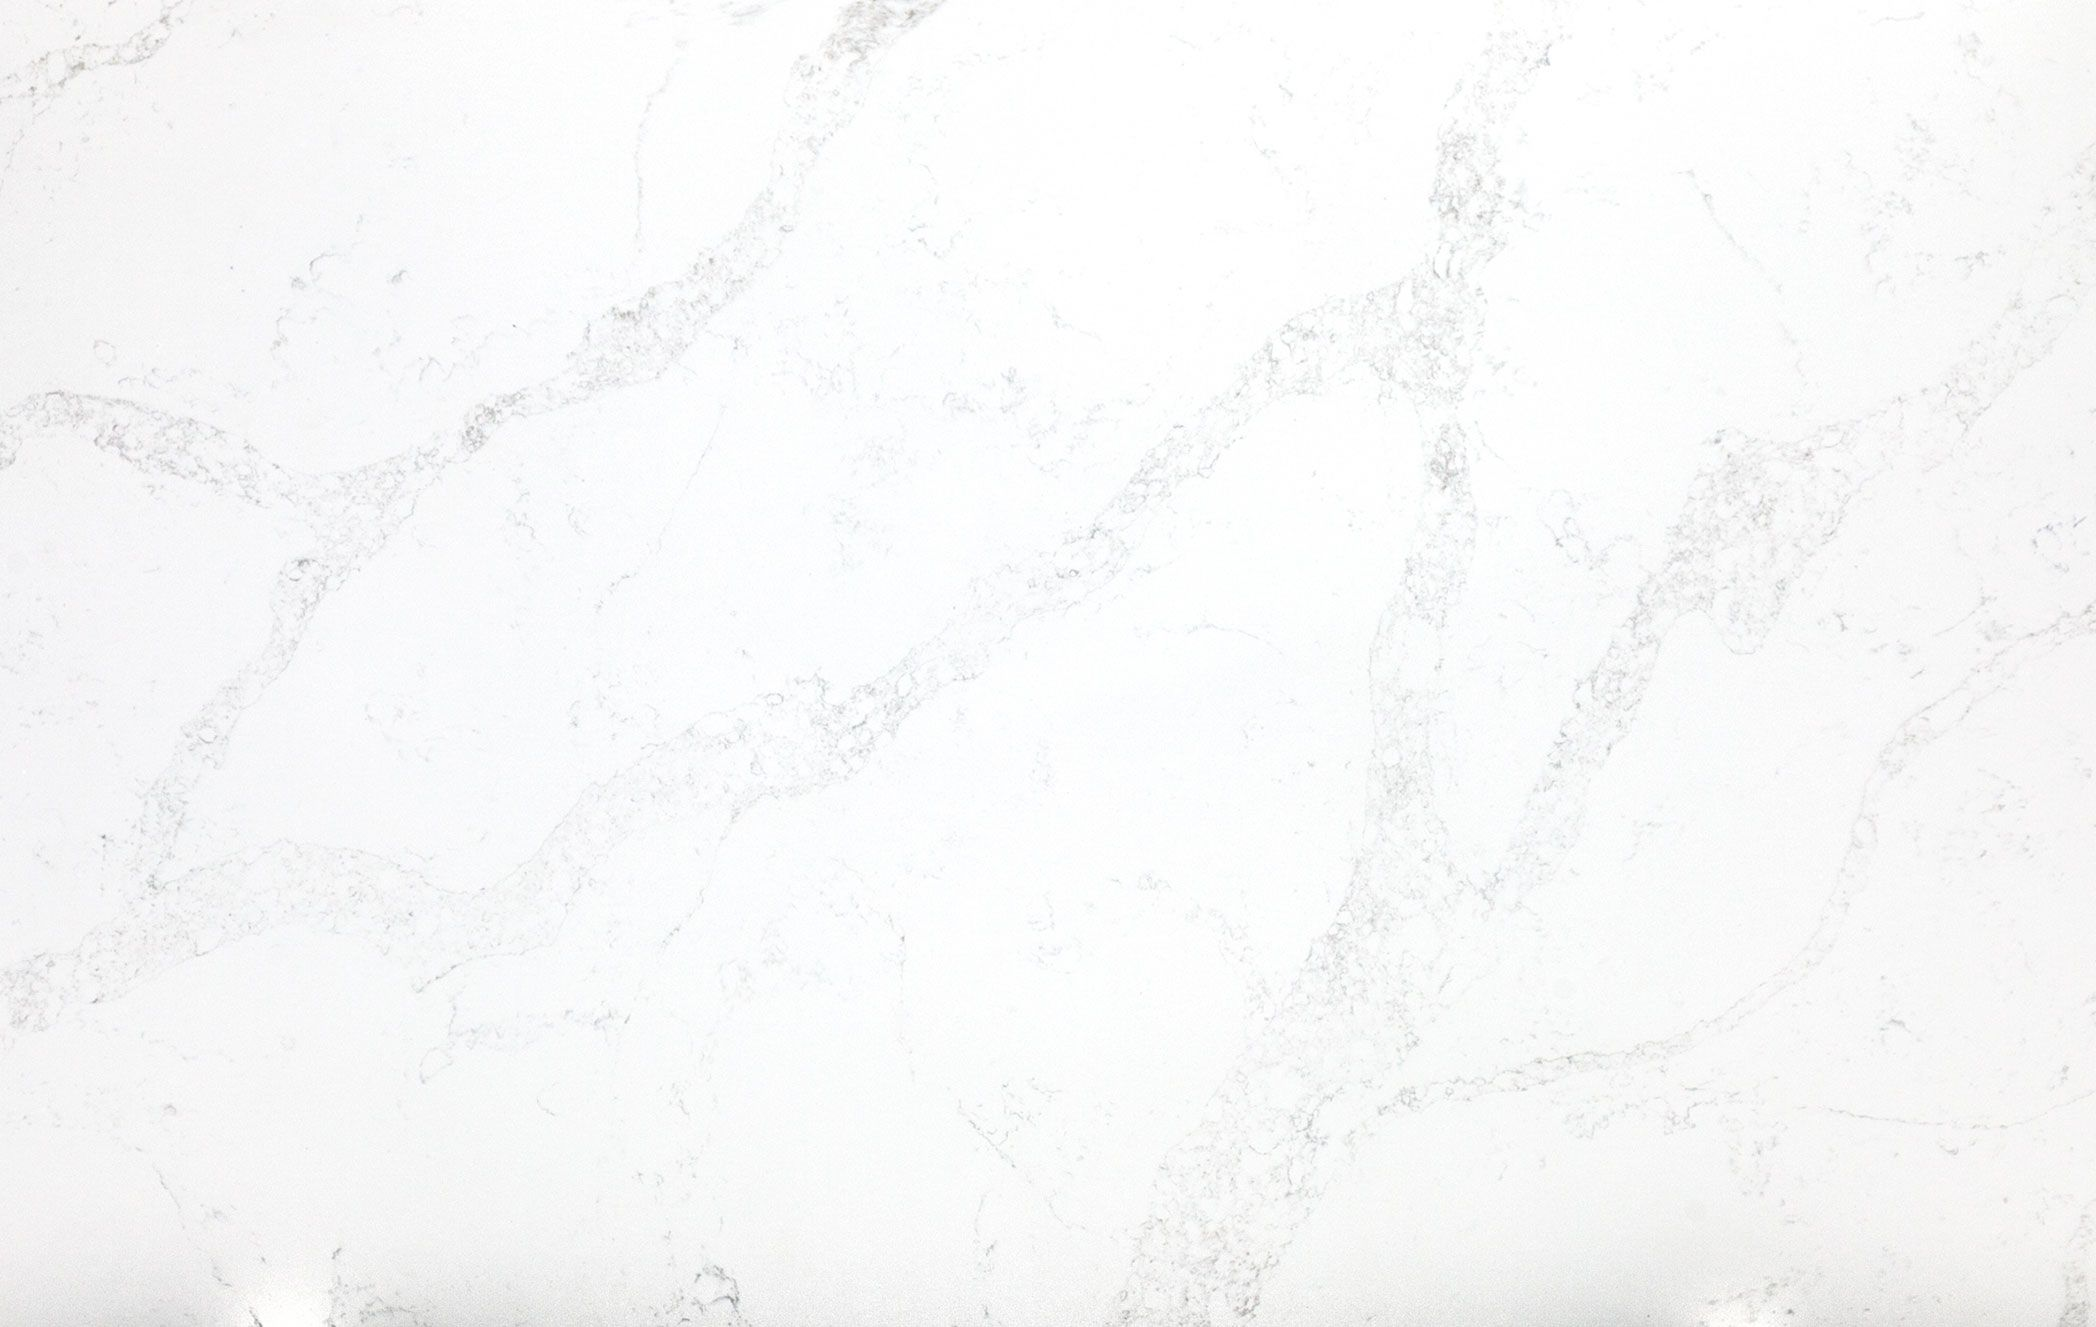 Quartz Countertops Stain Resistance Calacatta Venetian Ag Andm Is Proud To Offer Metroquartz